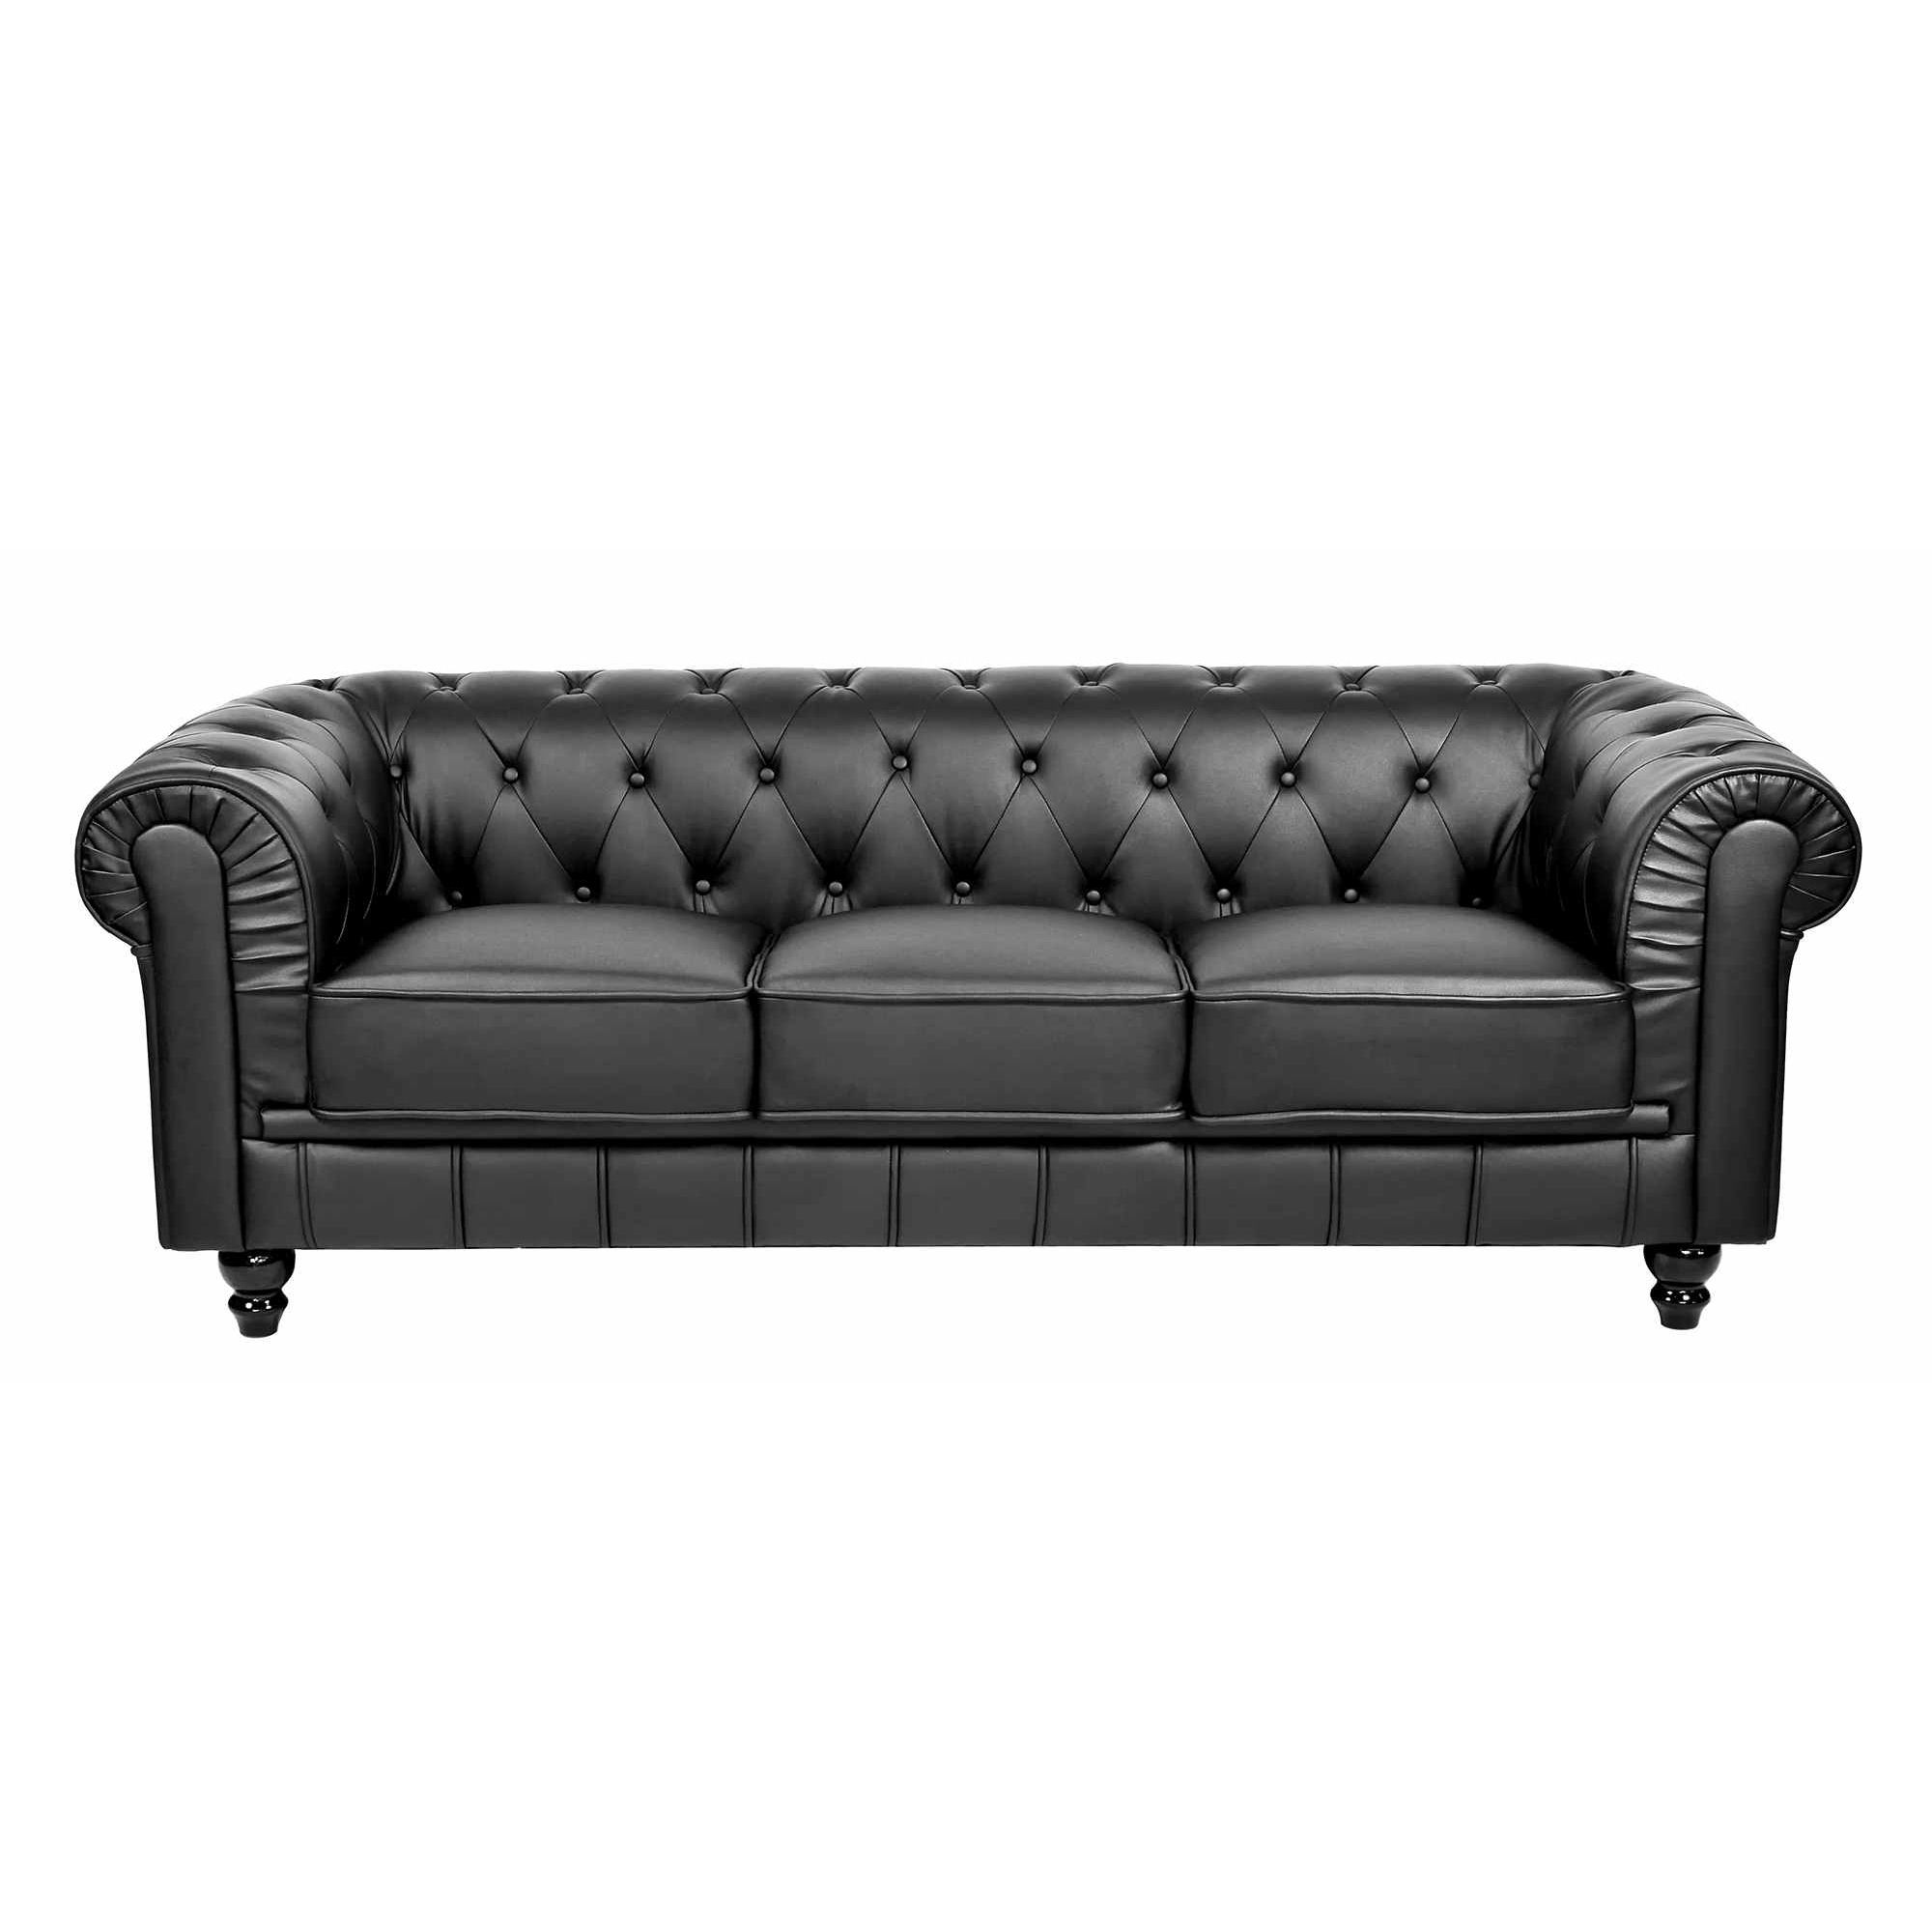 Canape chesterfield noir maison design for Chesterfield canape